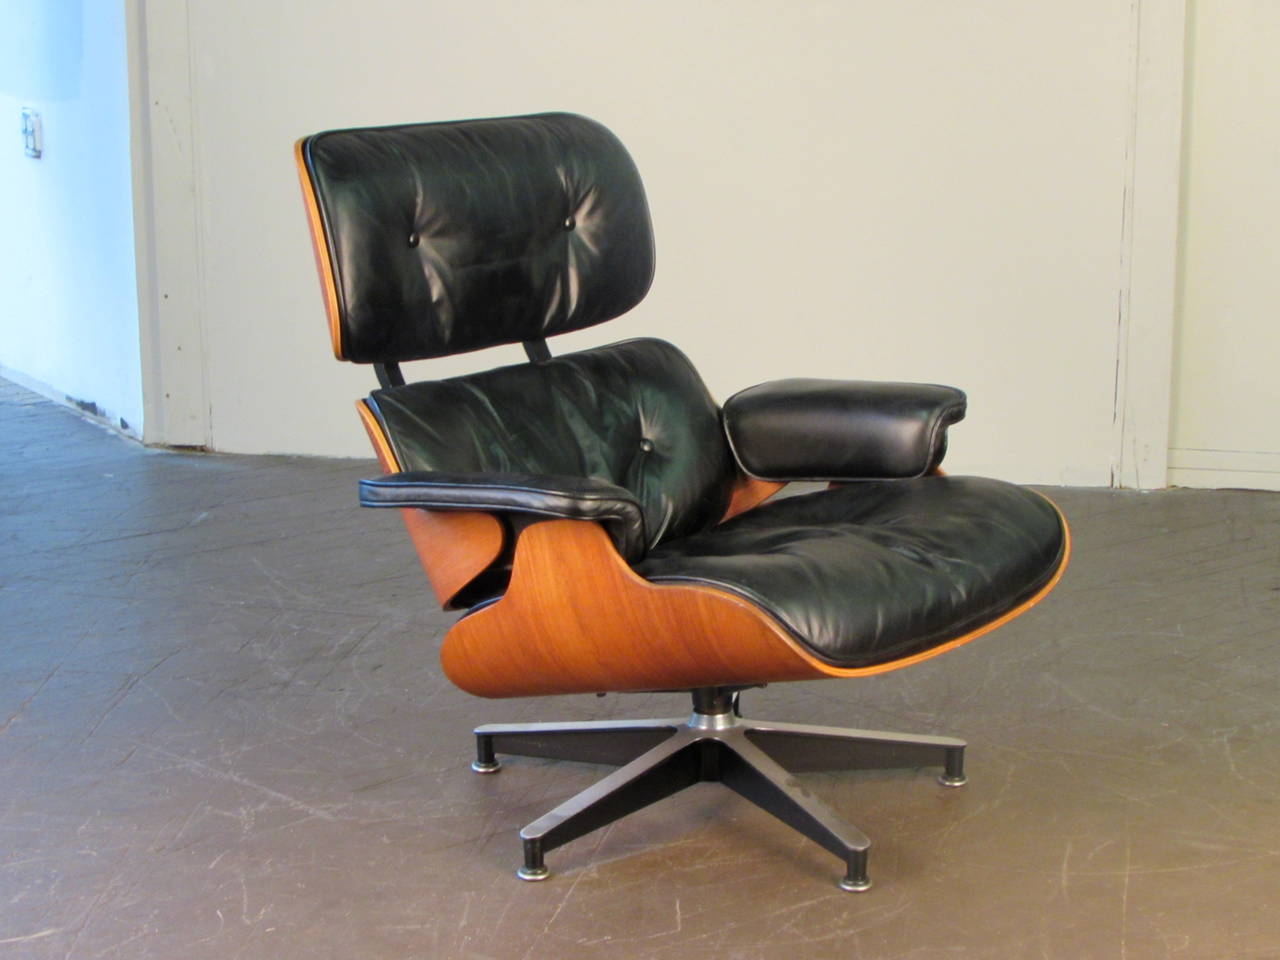 iconic 670 lounge chair by charles and ray eames for herman miller at 1stdibs. Black Bedroom Furniture Sets. Home Design Ideas